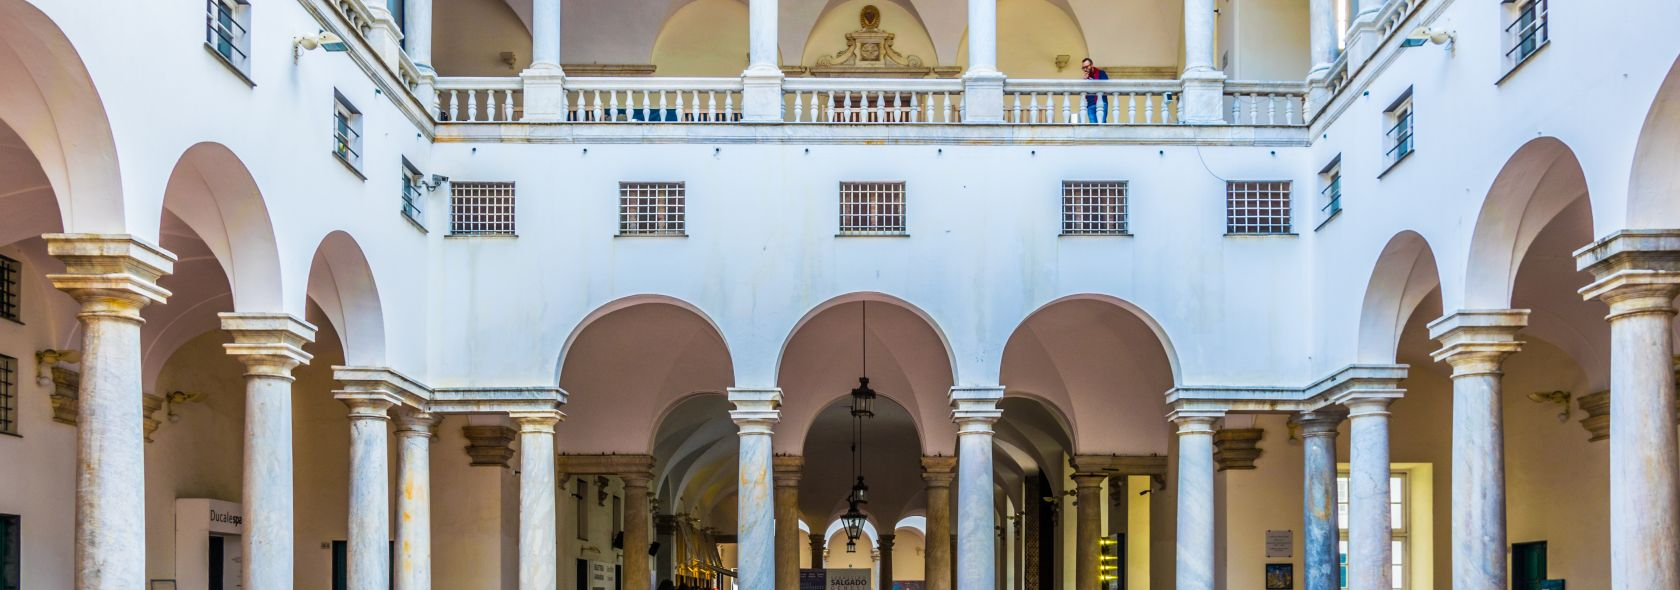 Palazzo Ducale - Cortile